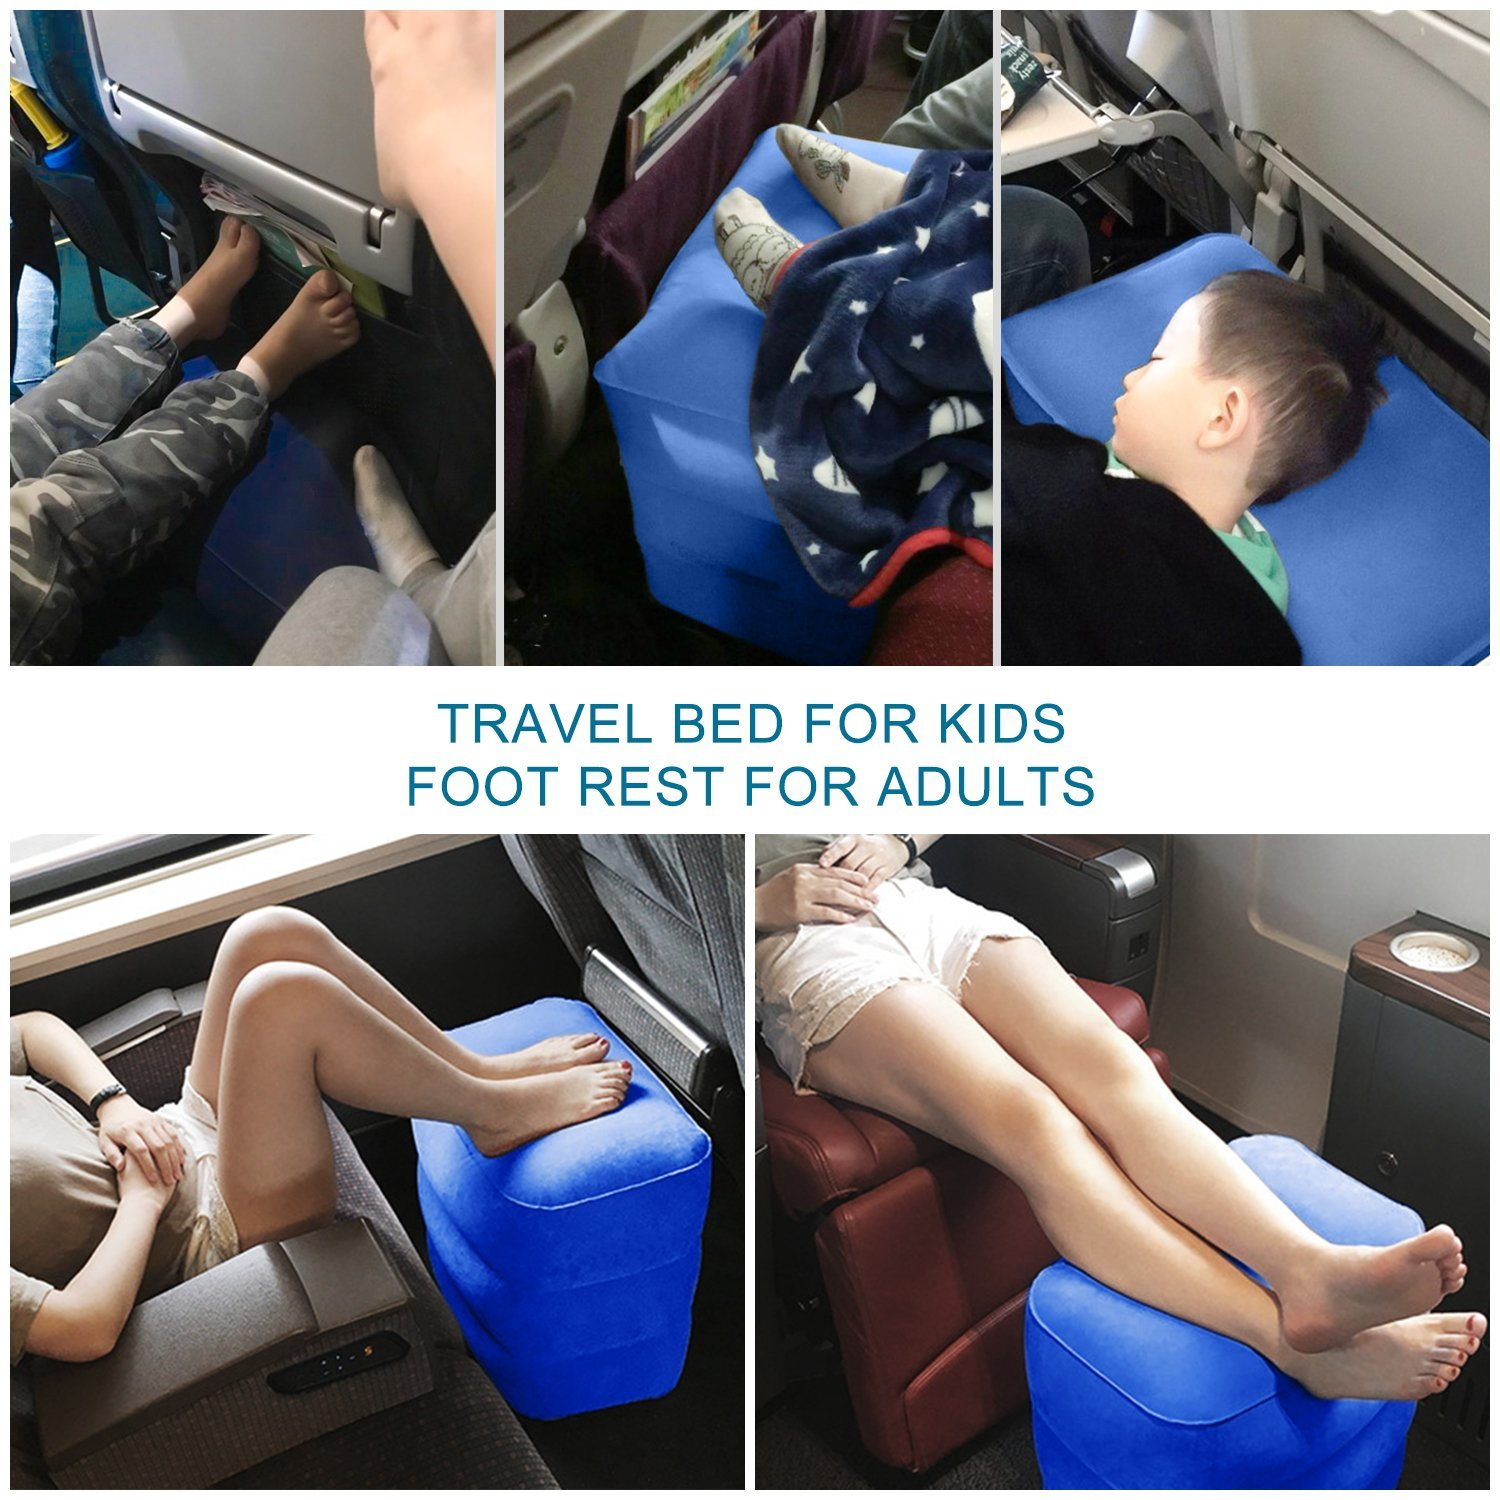 Airplane Travel Bed for Kids, Height-Adjustable Inflatable Travel Foot Rest. Perfect as Travel Accessories Gift, Car Seat Footrest, Plane Leg Rest Pillow, Air Travel Bed Box for Kid.